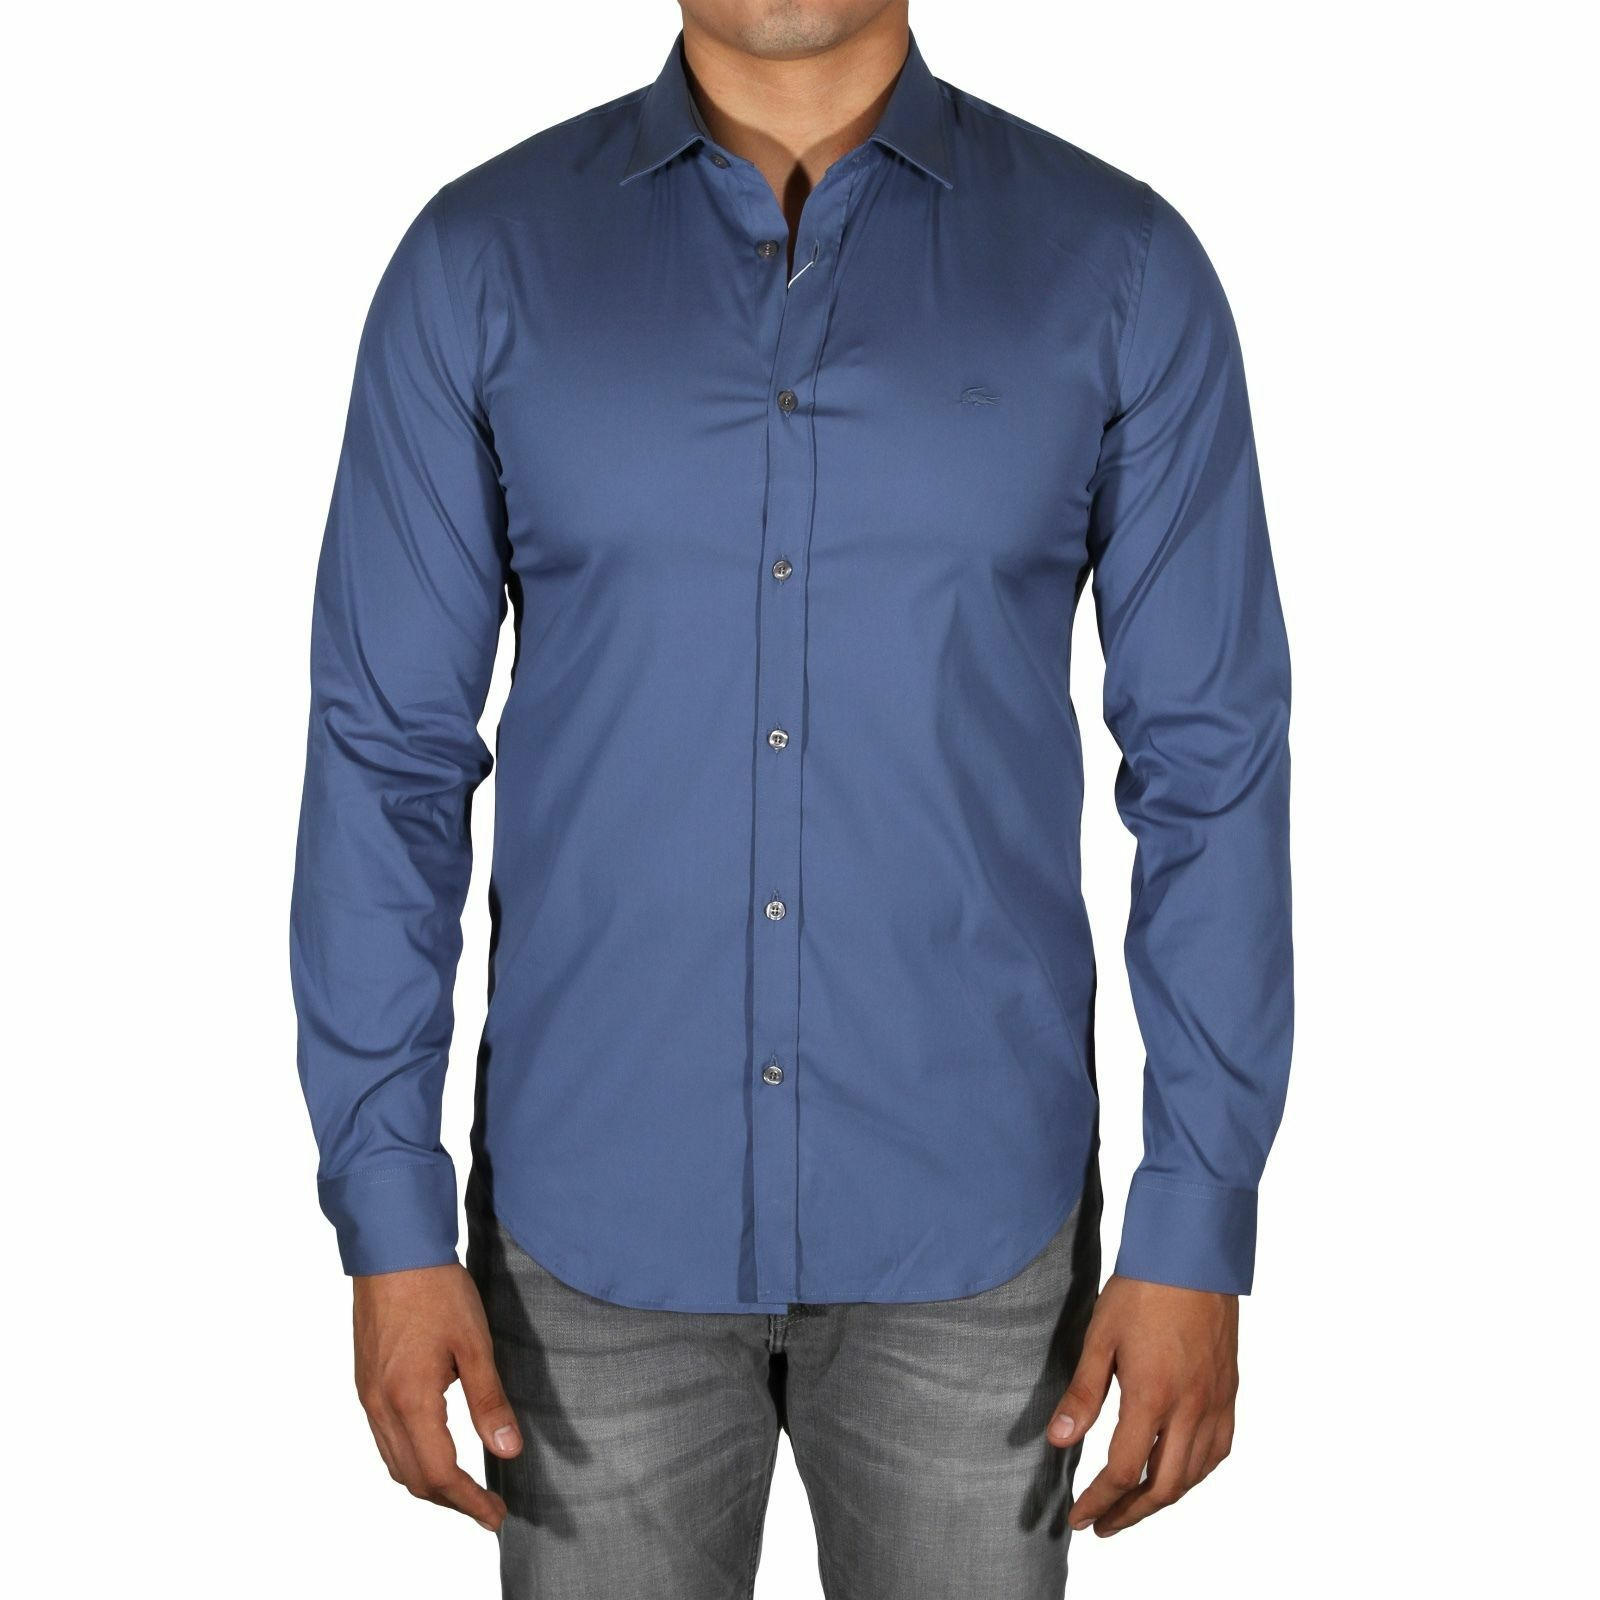 Lacoste Down Herren Slim Fit Stretch Long Sleeve Button Down Lacoste Shirt Avon Blau CH9628 022bbb